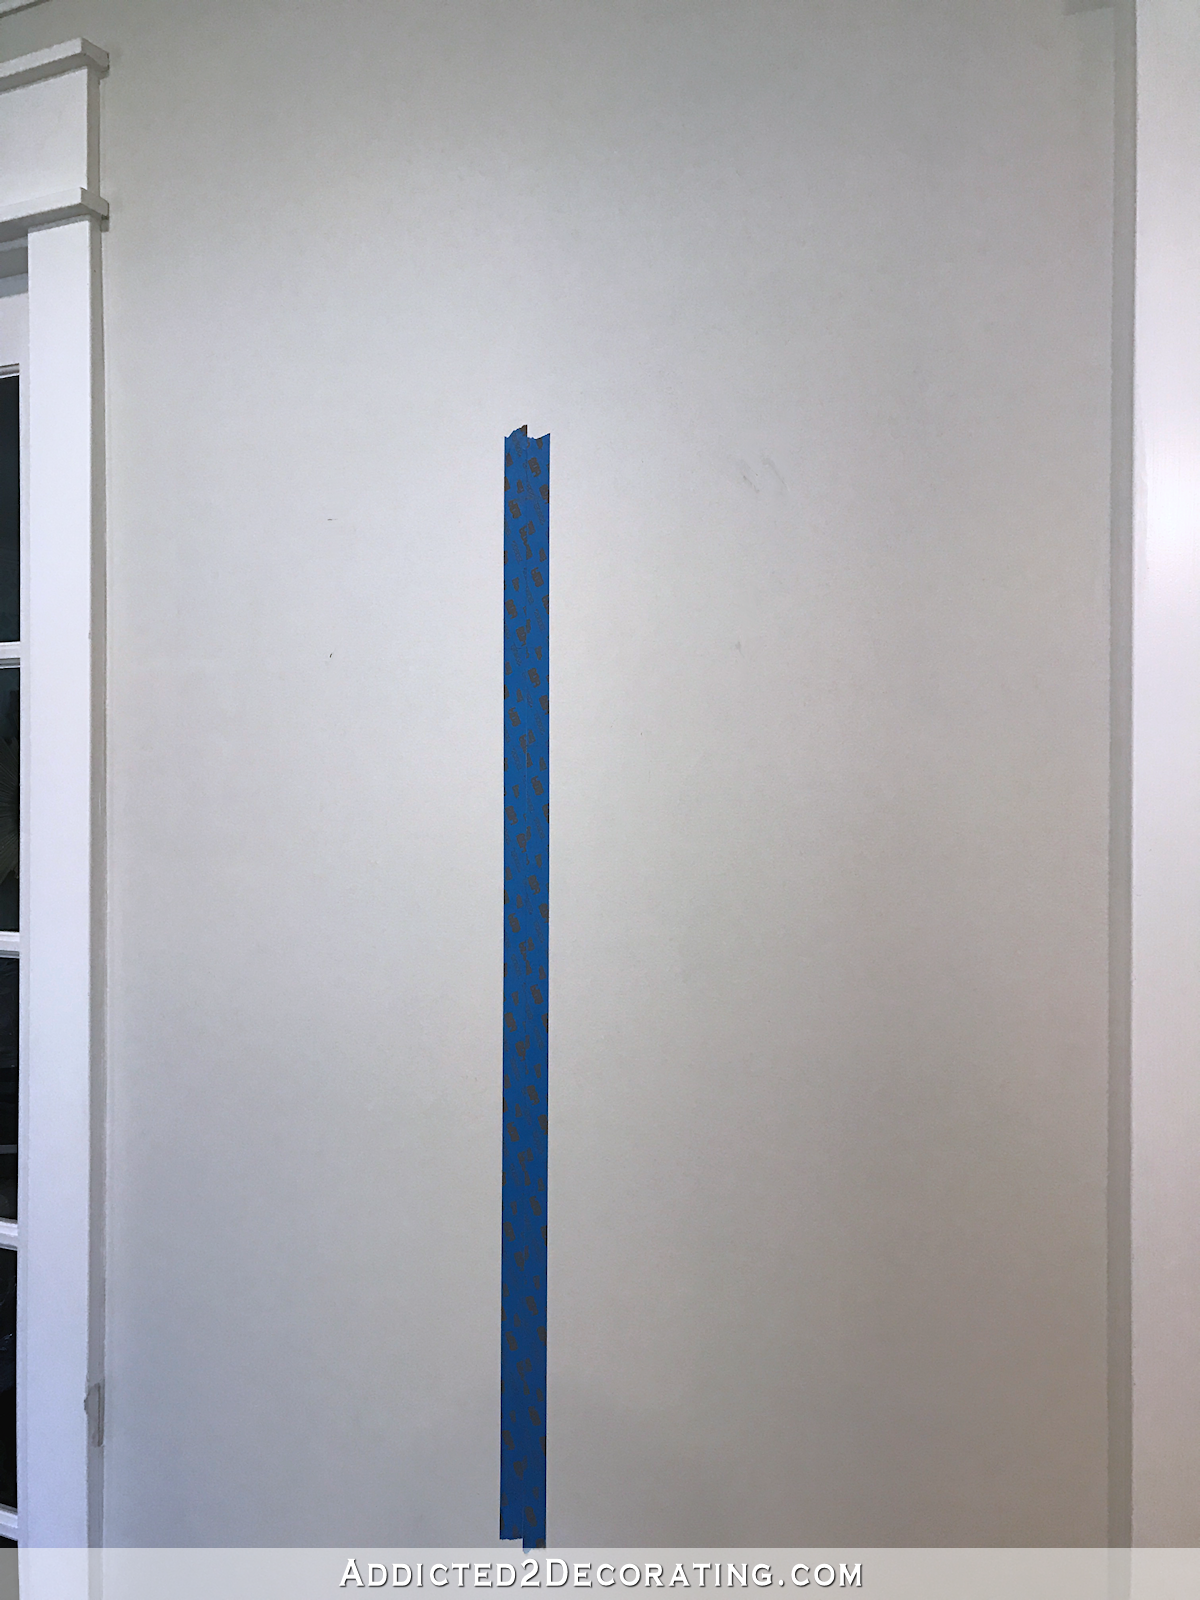 how to hang a perfect gallery wall - use painters tape to mark a grid on the wall - 1